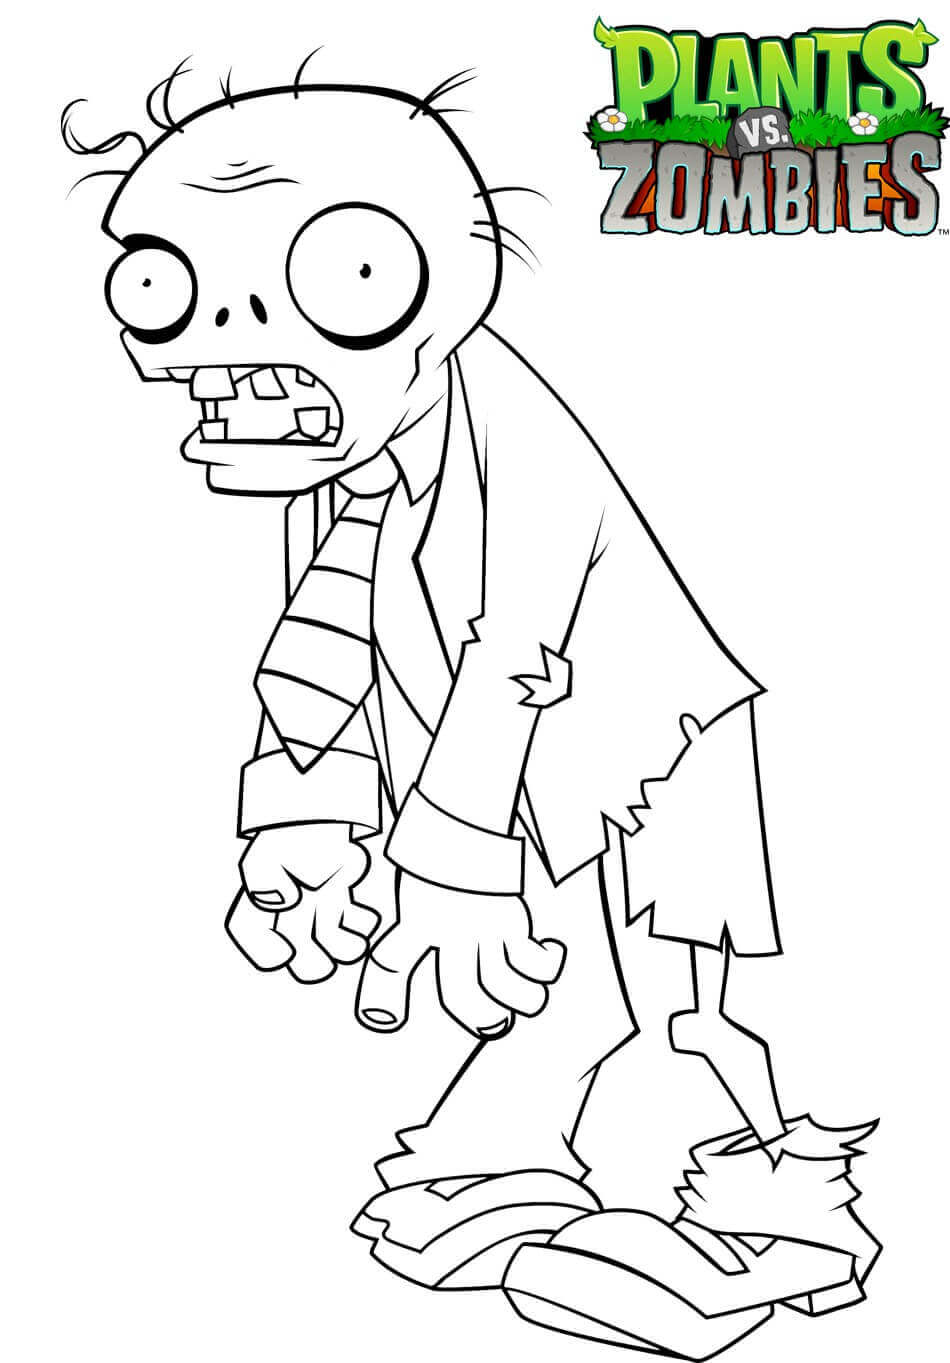 Zombie From Plants Vs Zombies Coloring Page